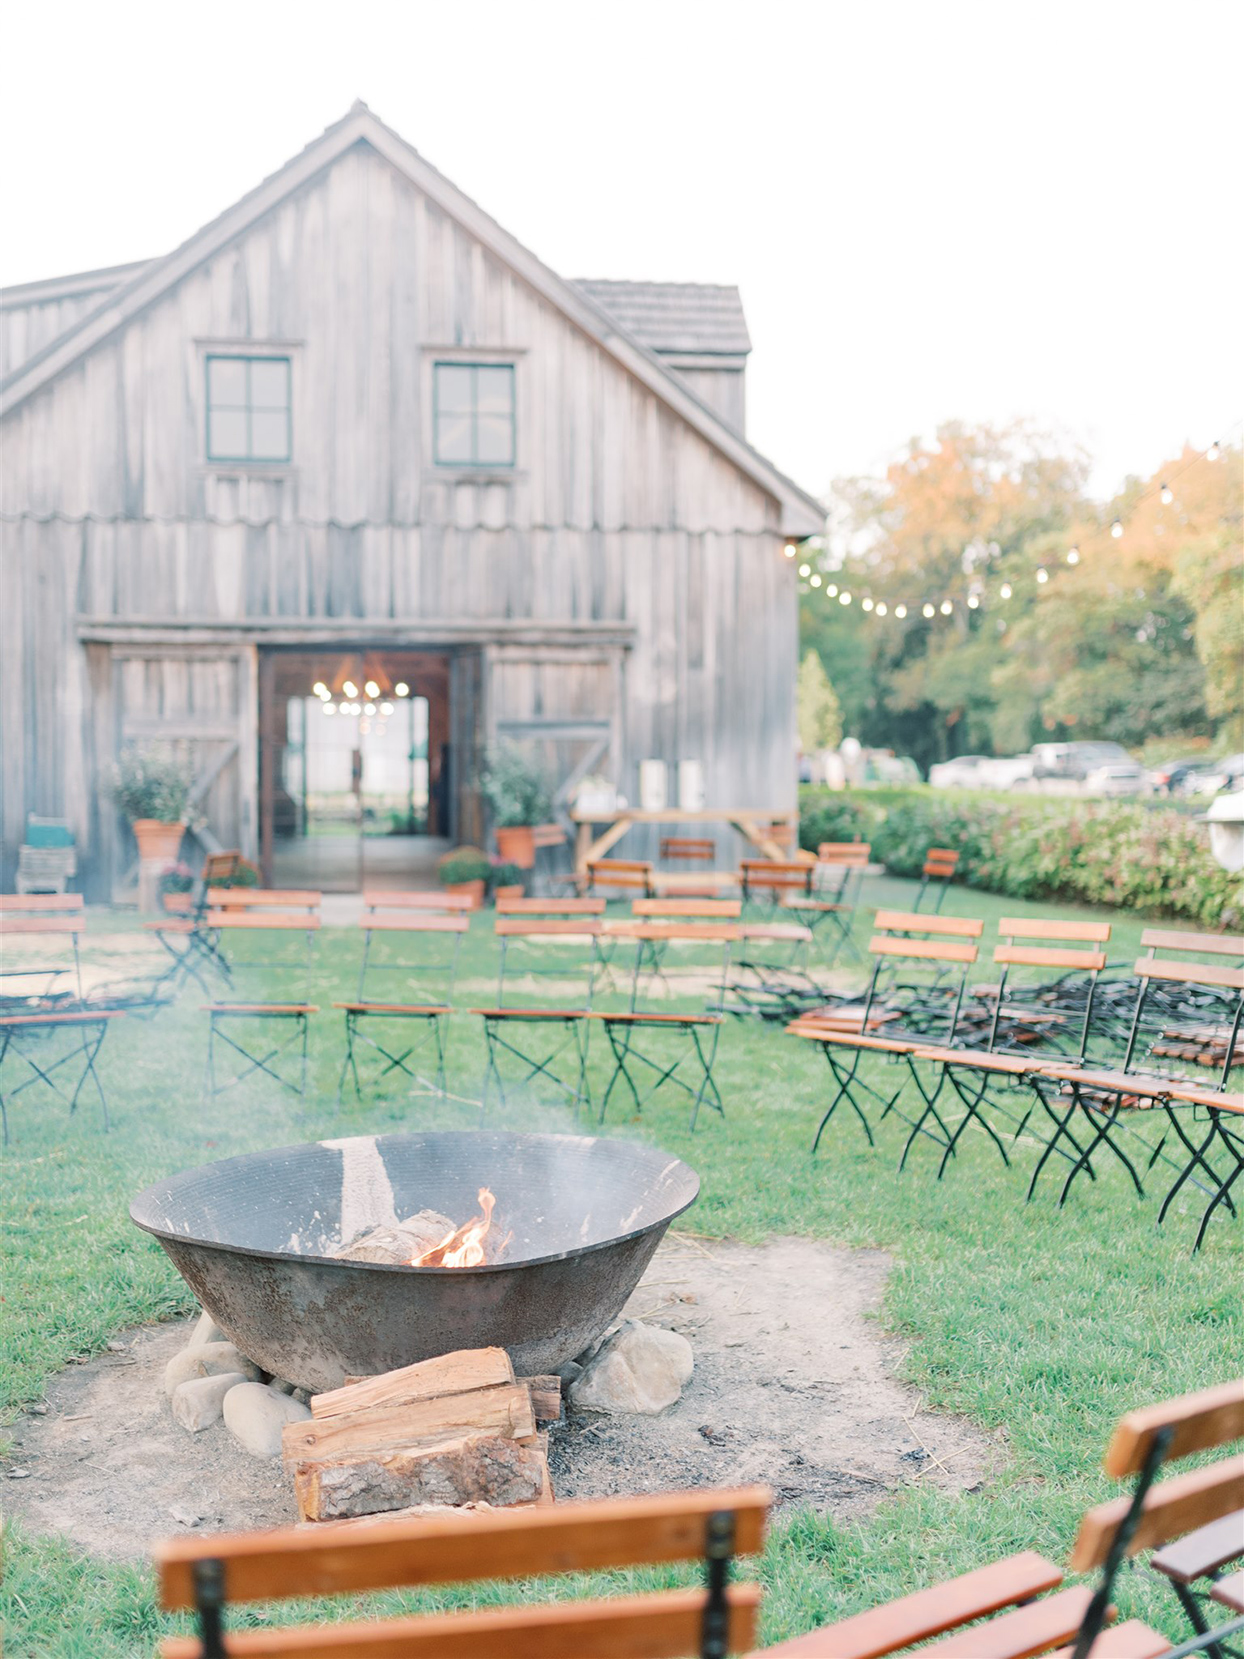 fire pit with chairs around it and barn in the background